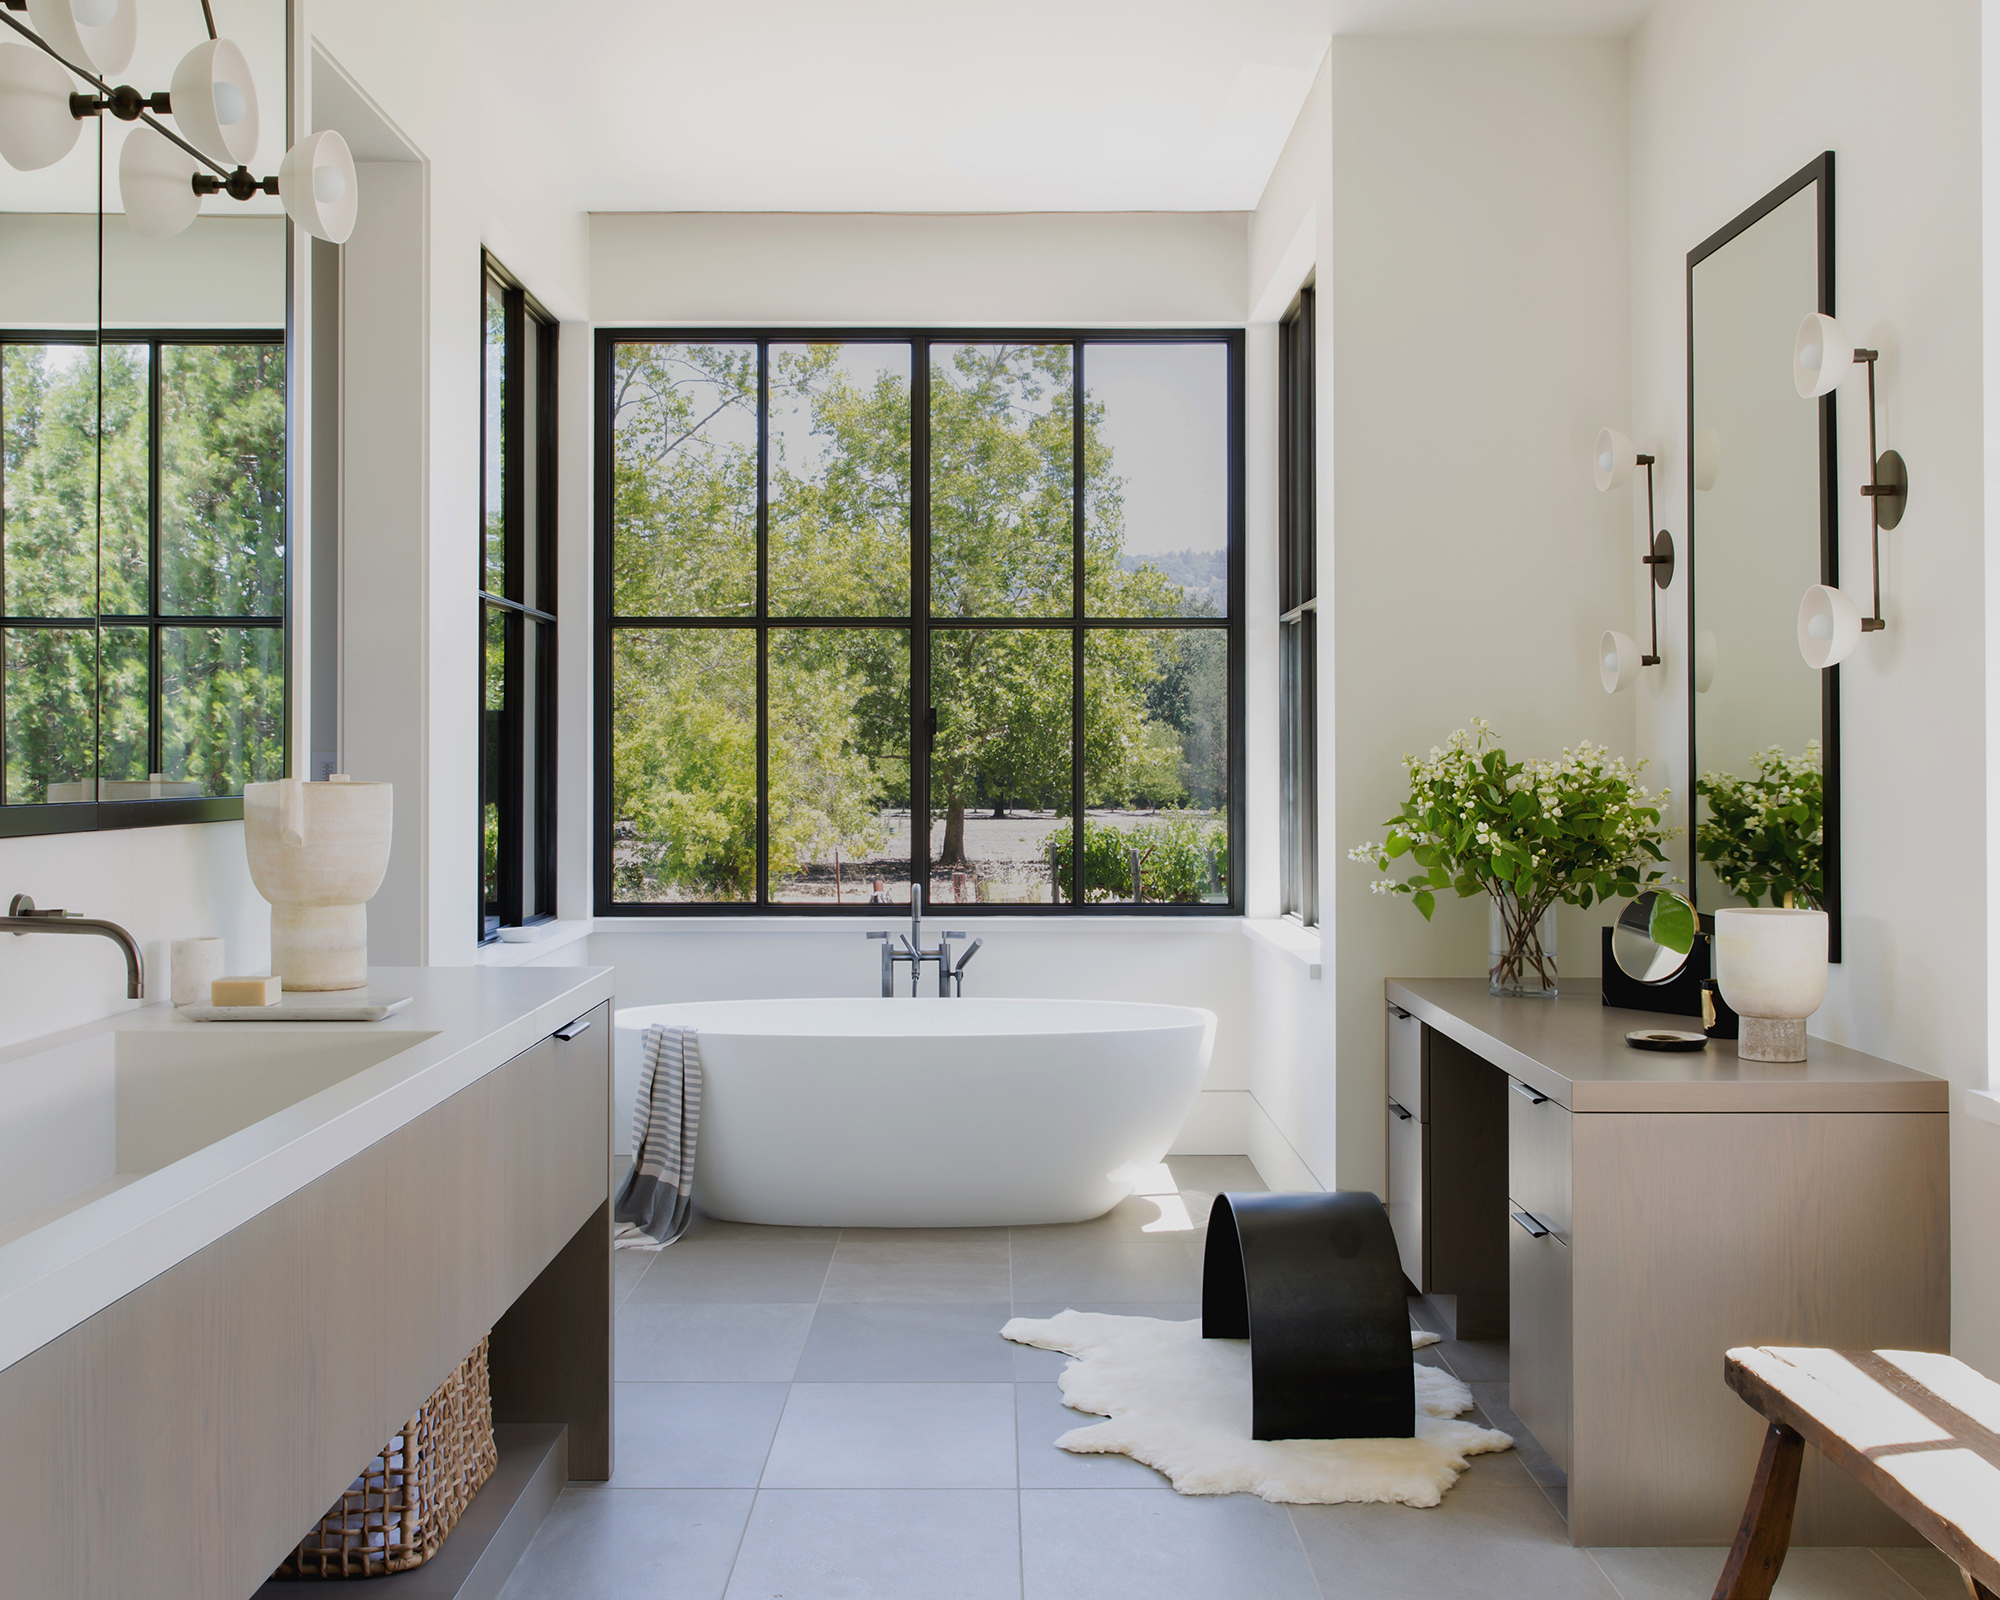 Ensuite Ideas Stylish Decor Ideas For Master Bathrooms Of All Sizes Homes Gardens